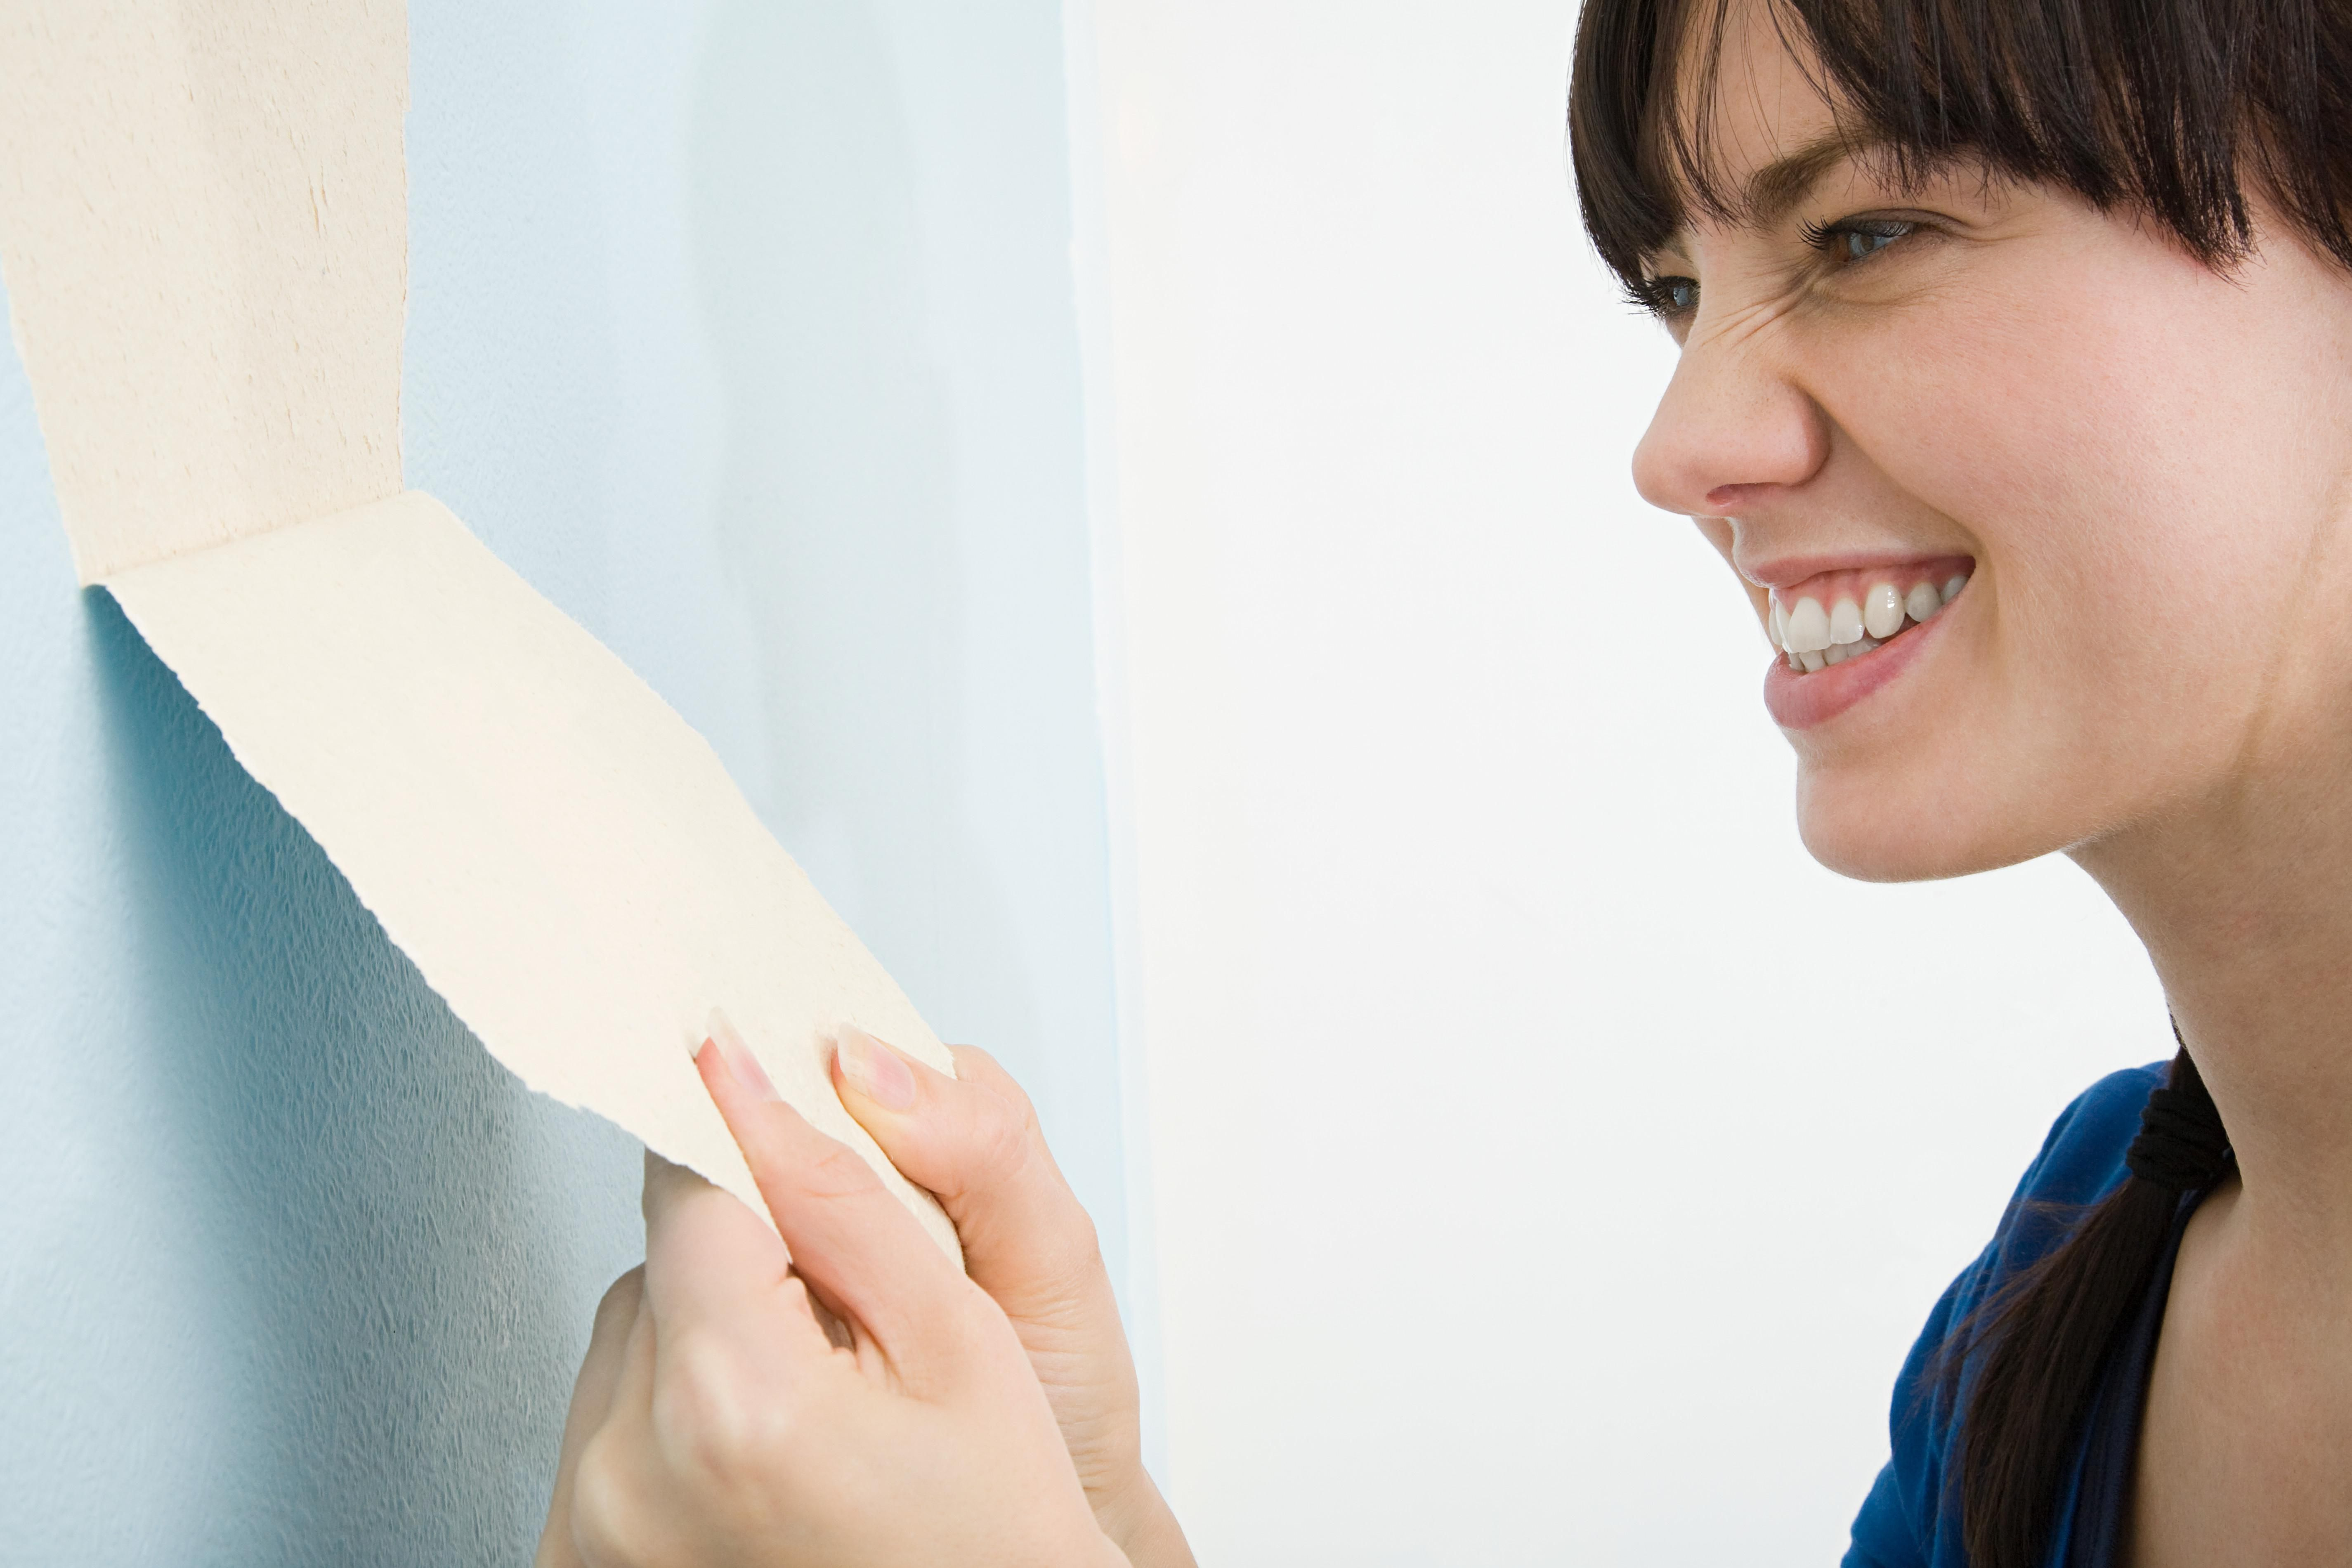 Heres A Homemade Wallpaper Remover Recipe That Works Just As Well Commercial Products At